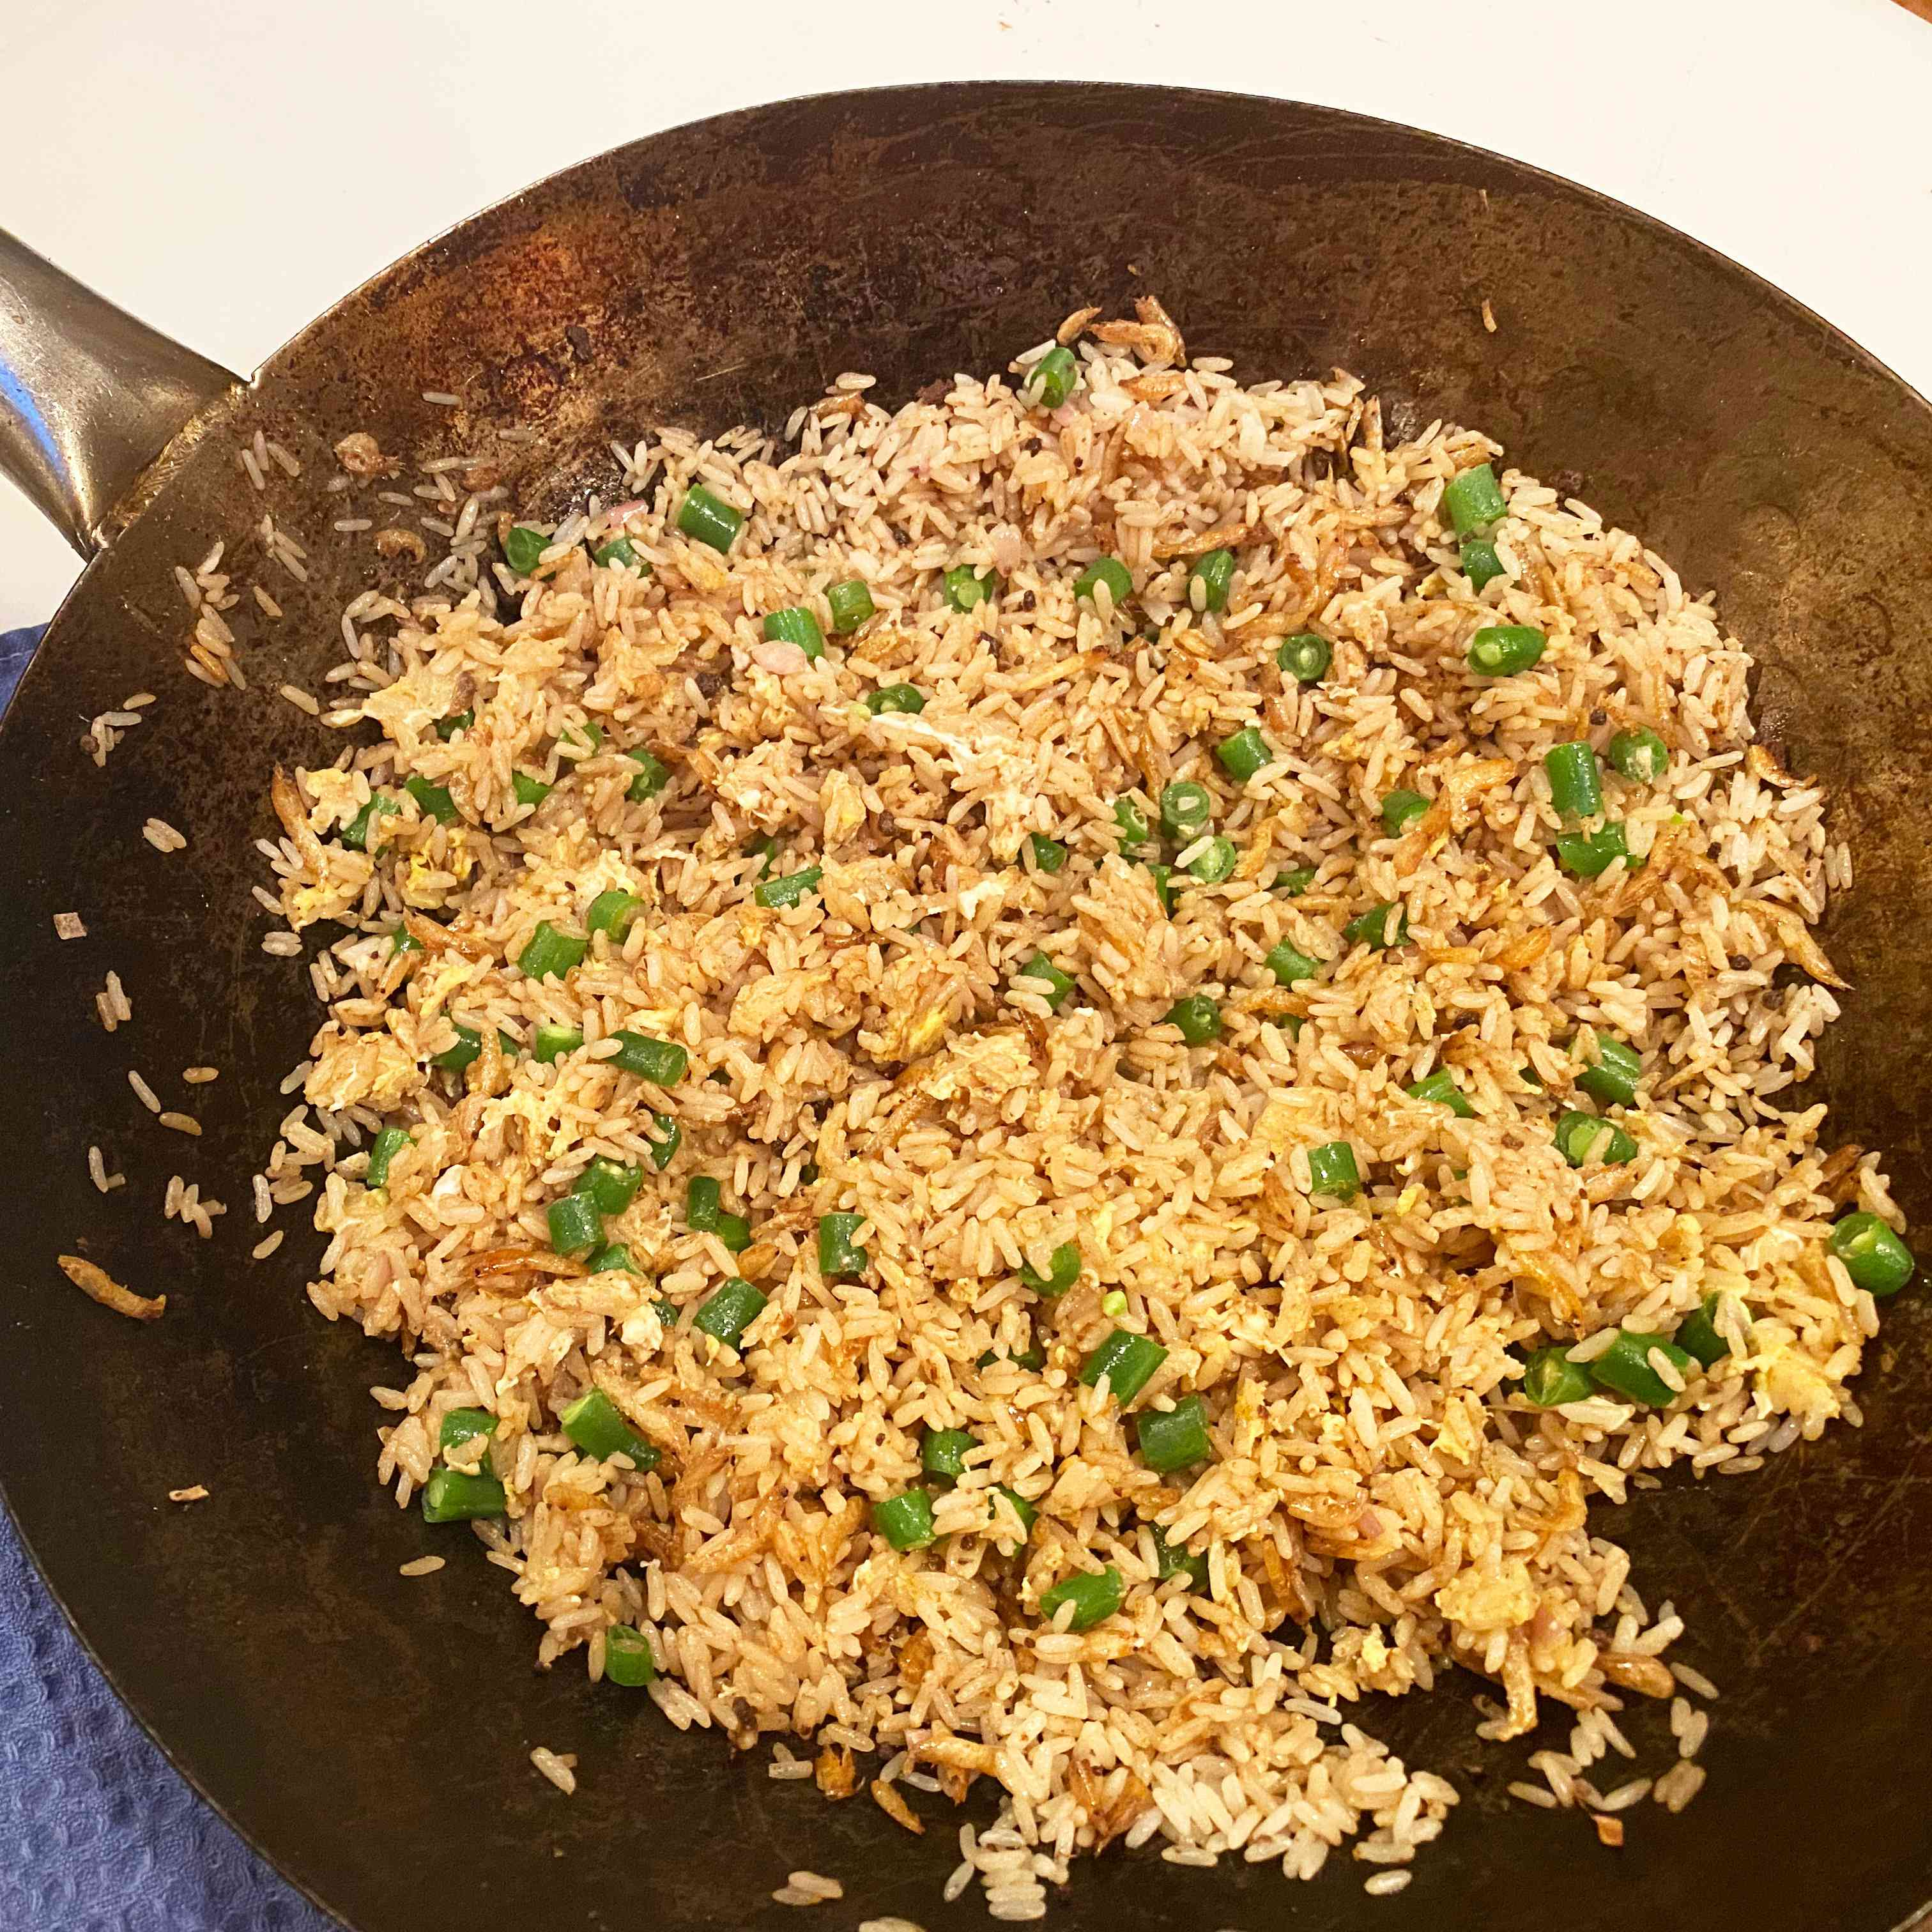 Malaysian Fried Rice with Shrimp or Belacan Recipe/Tester Image